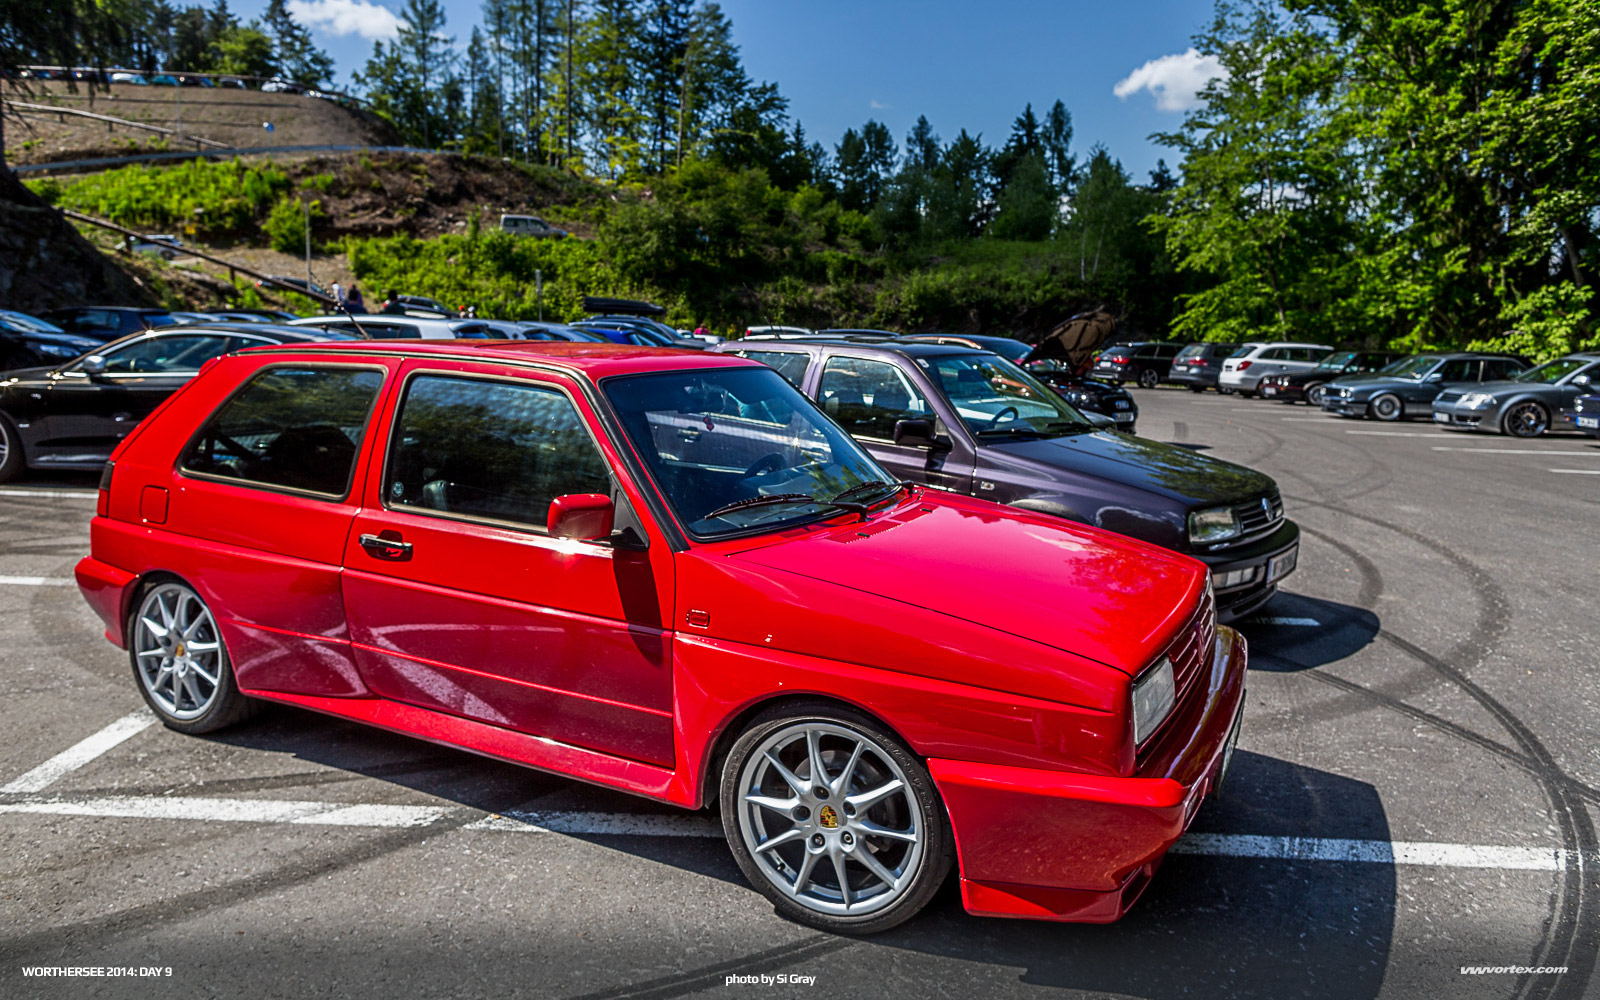 2014-Worthersee-Day-9-Si-Gray-402